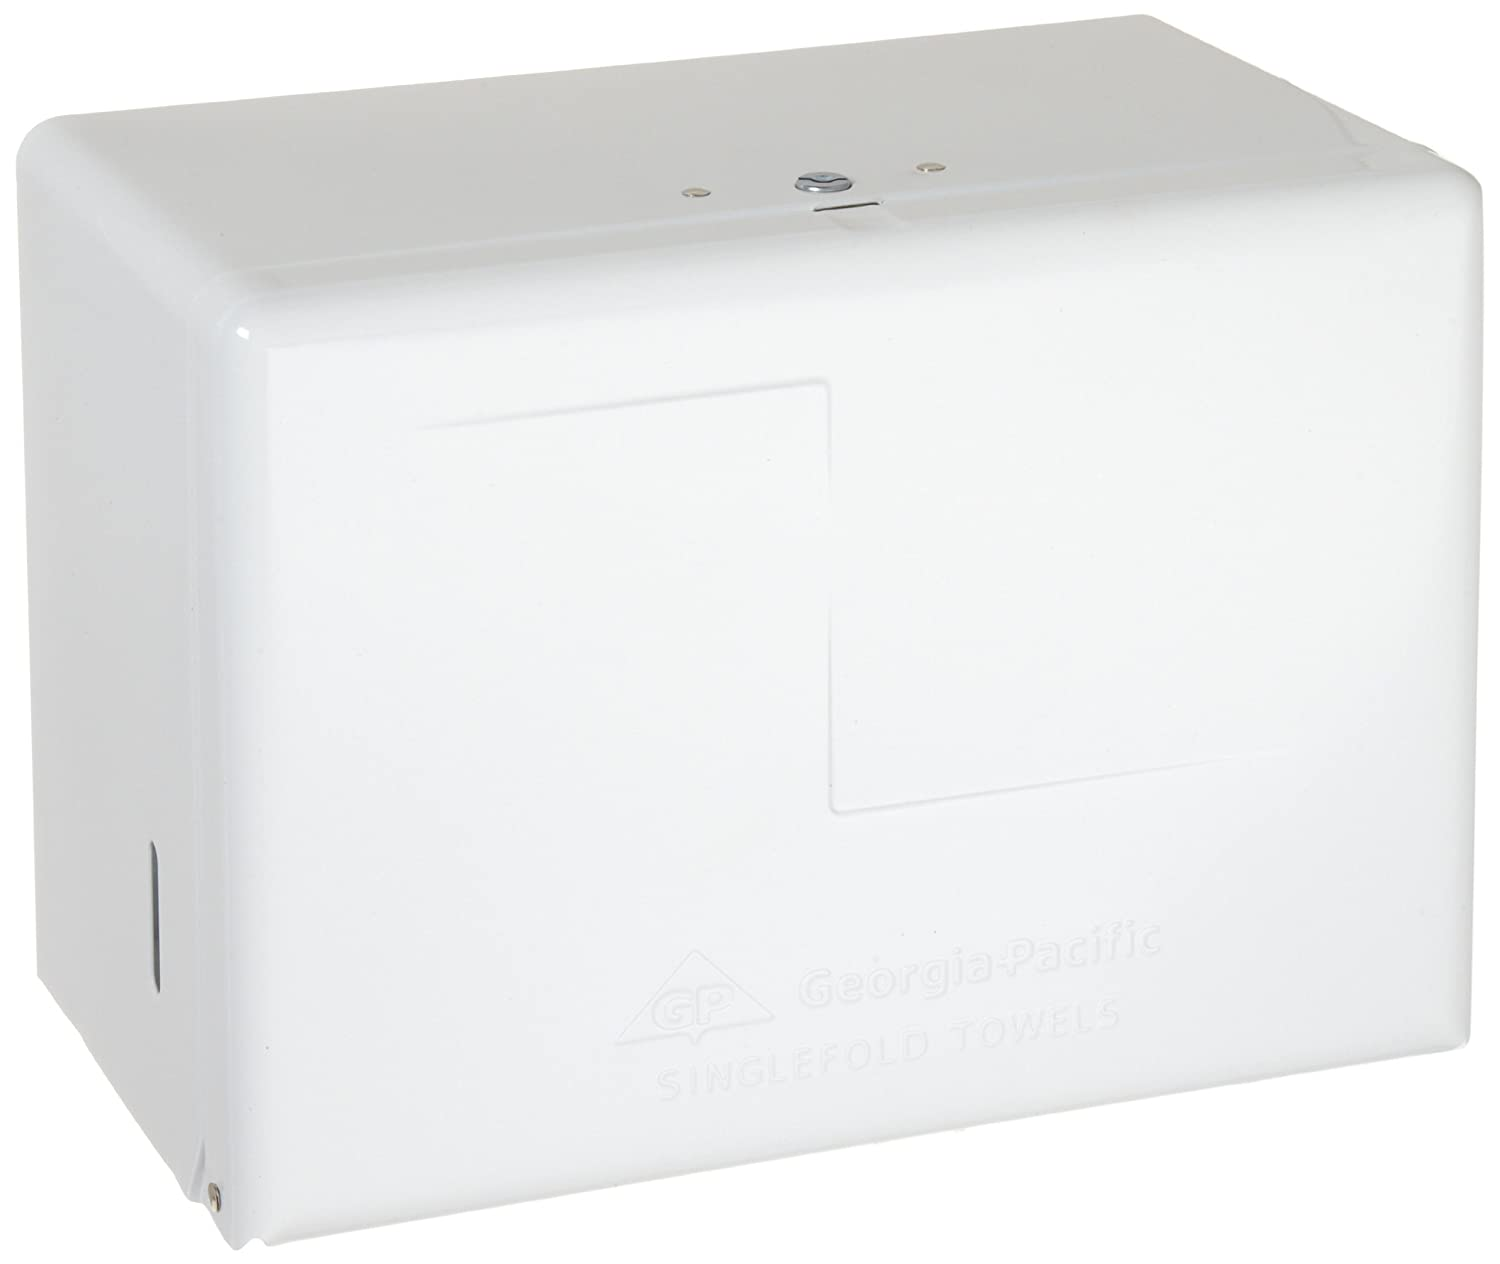 "Singlefold Paper Towel Dispenser by GP PRO (Georgia-Pacific), White, 56701, 11.625"" W x 6.625'' D x 8.125"" H"